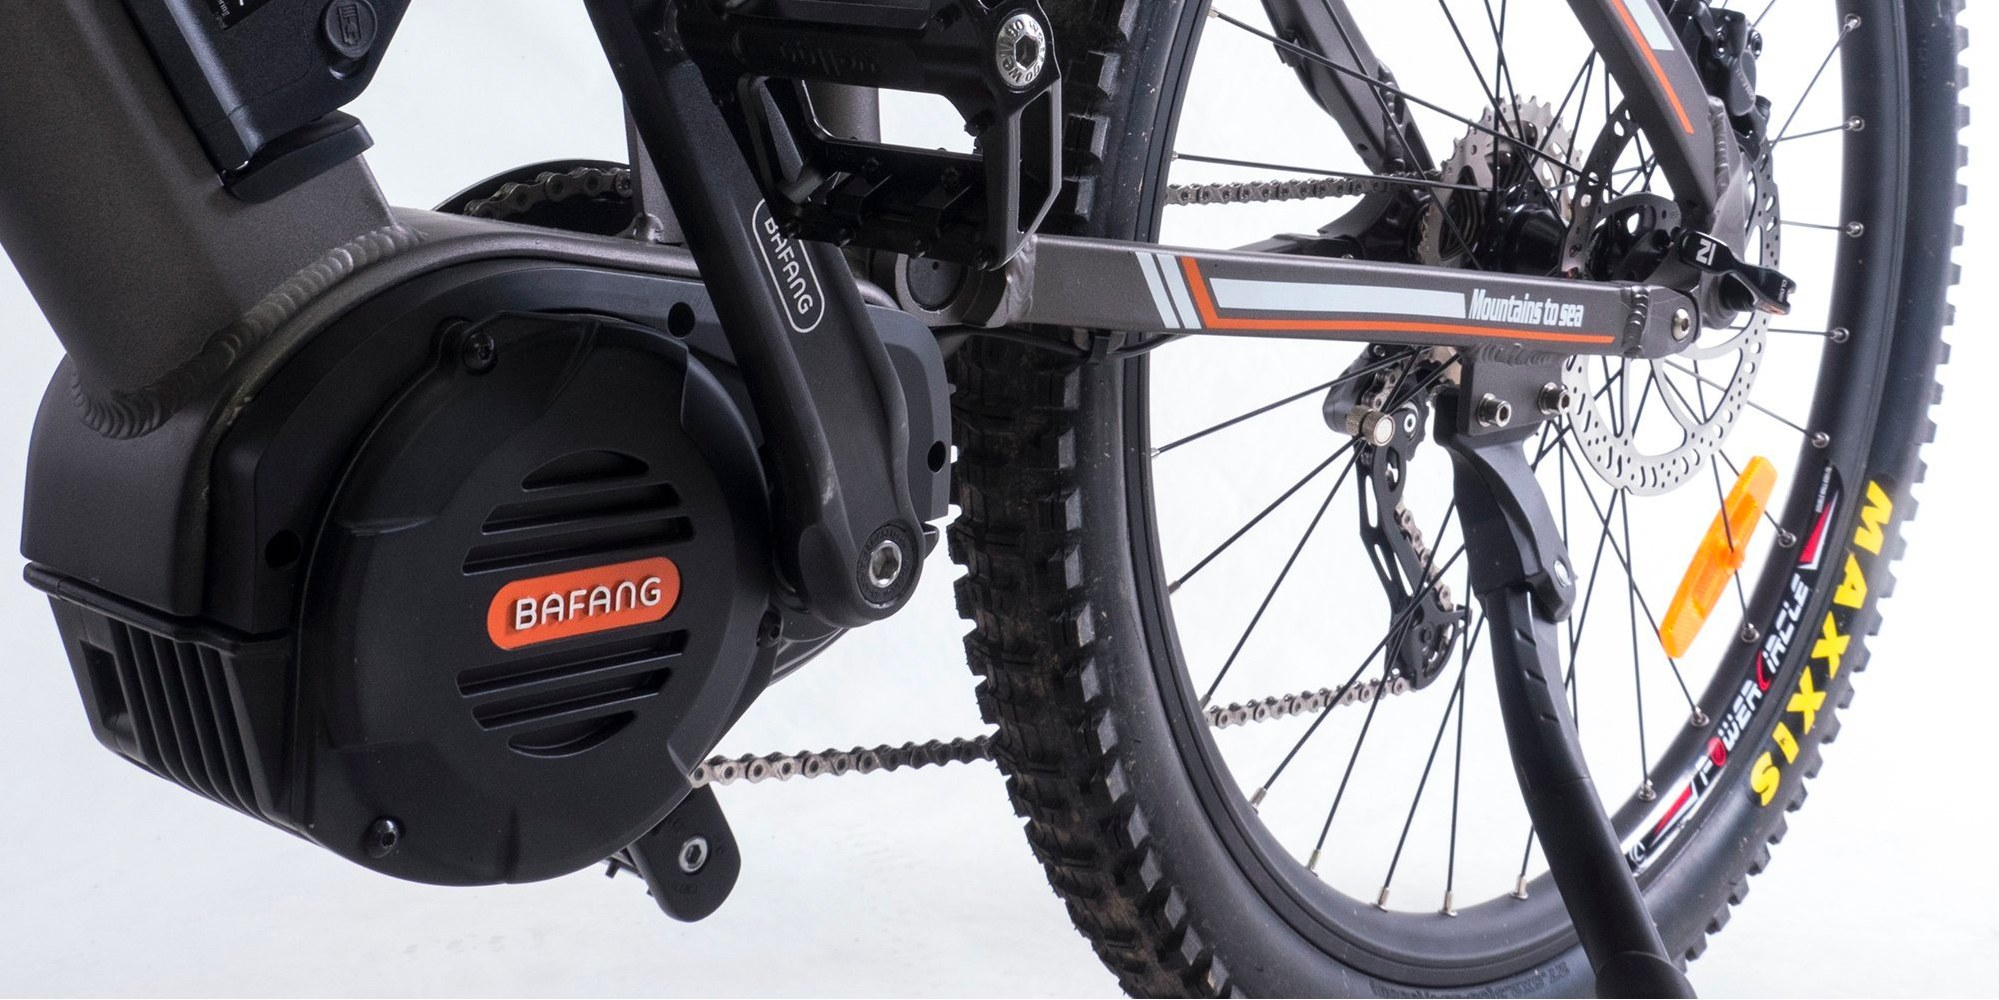 Bafang Ultra electric bicycle motor offers over 1,600 W of power & massive torque